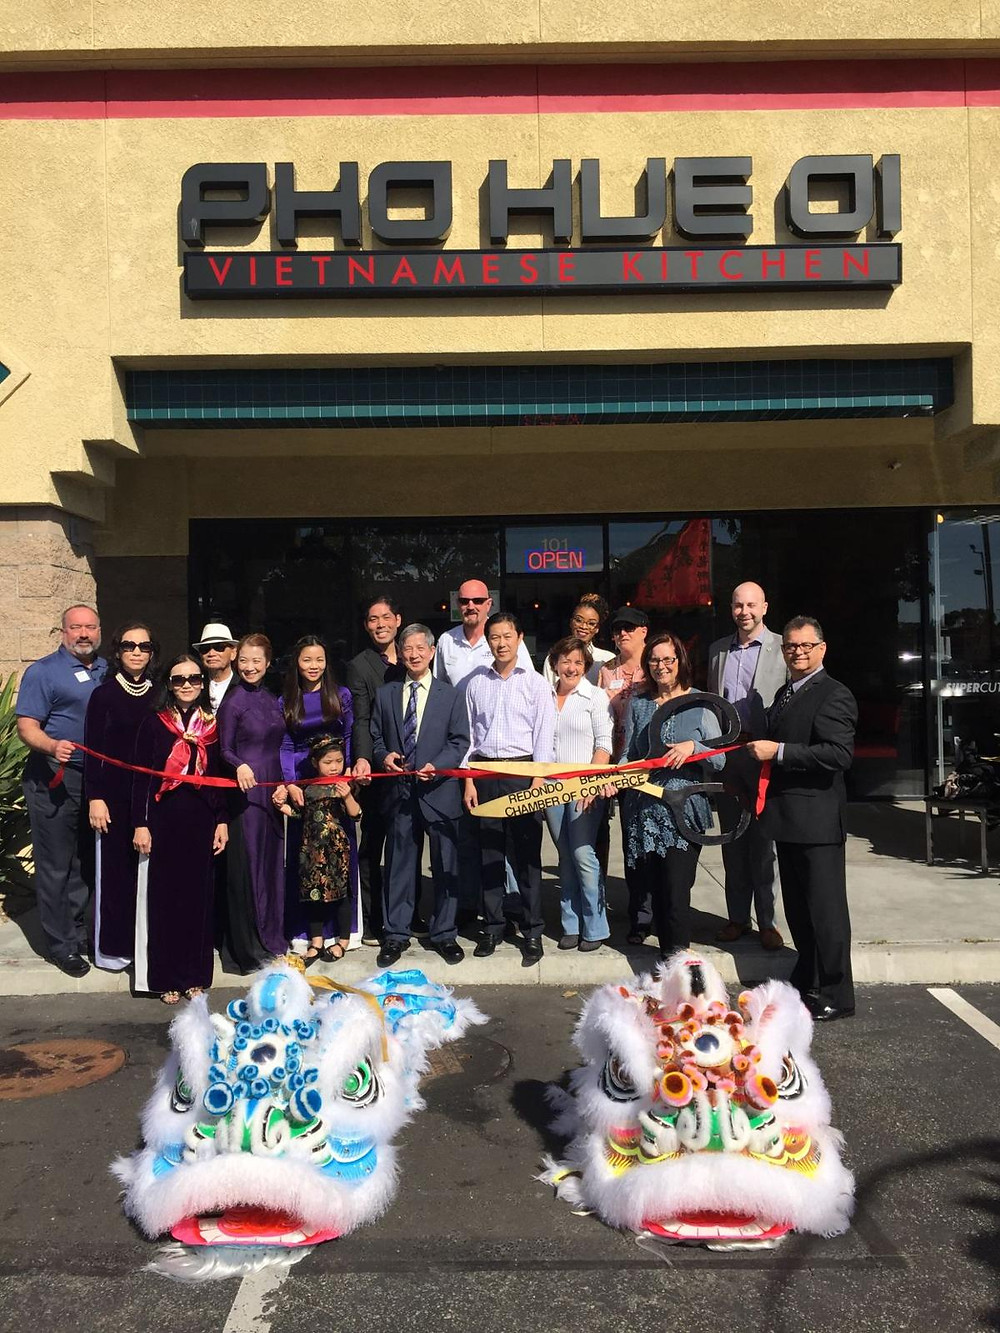 Pho Hue Oi Grand opening